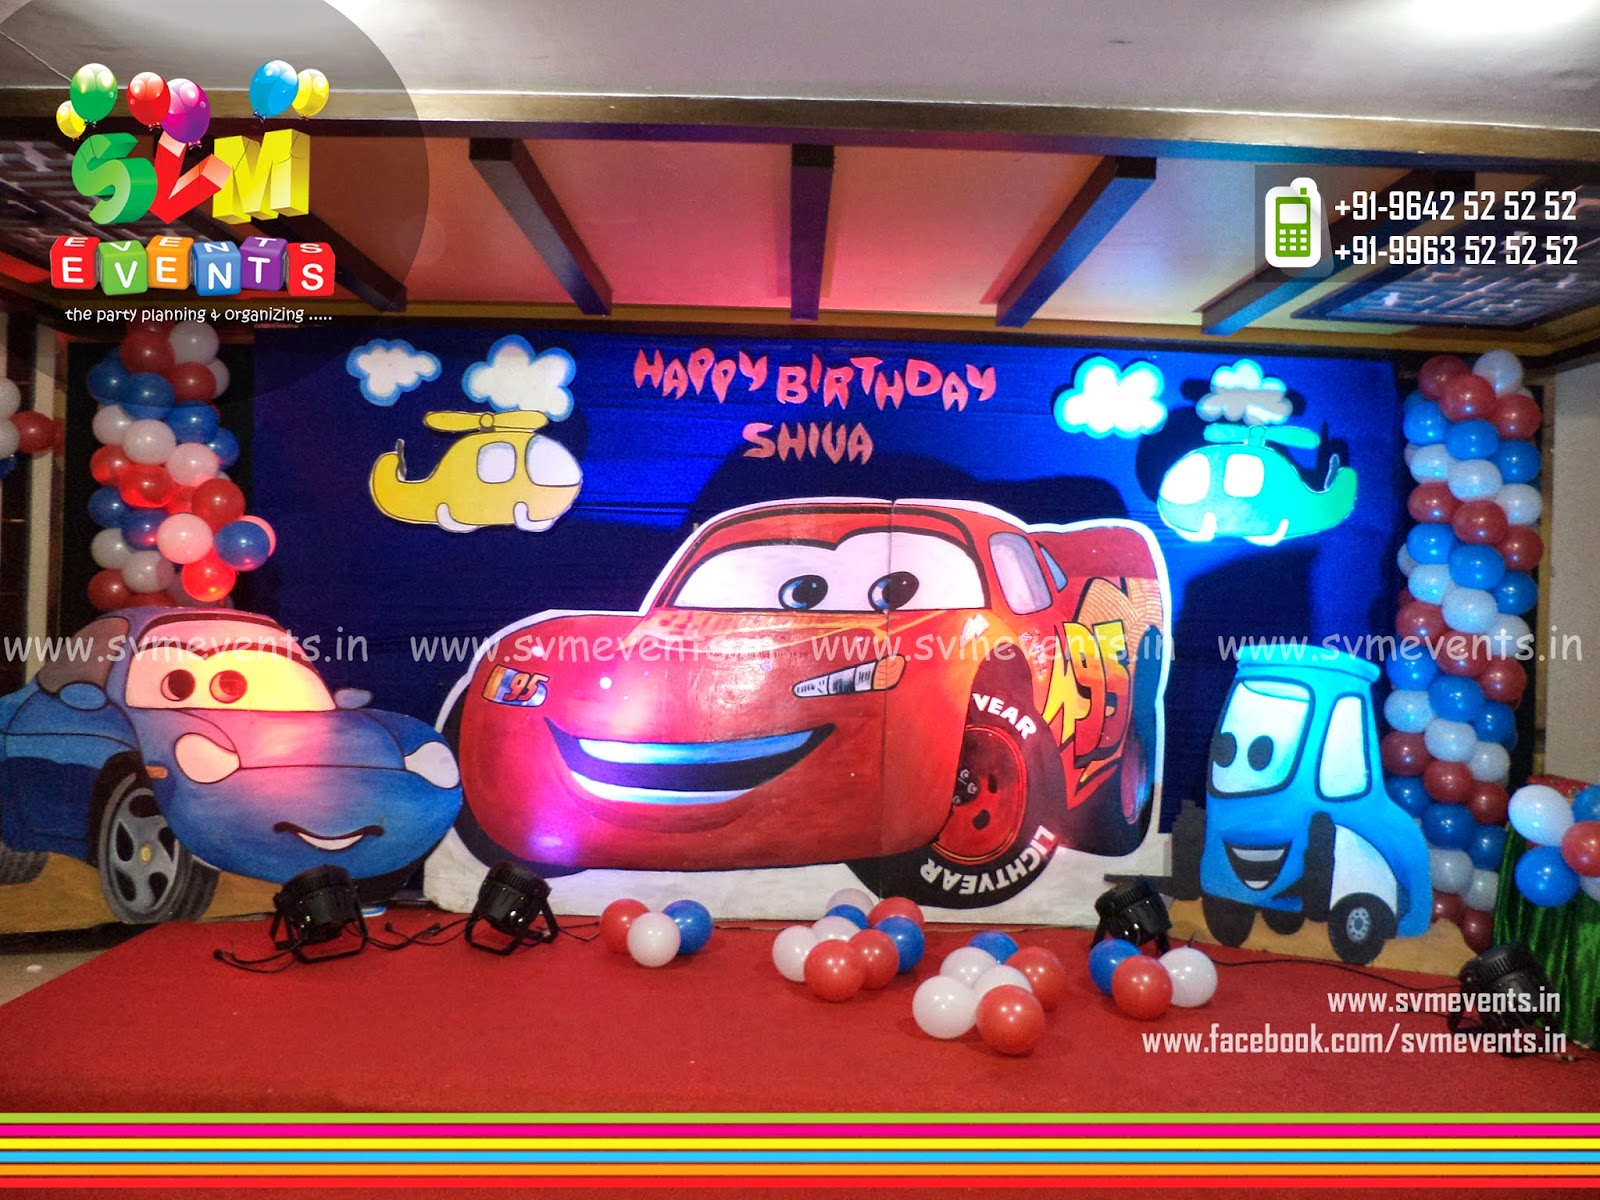 Svm Events 2D Or Semi 3D Backdrops Balloon decorations